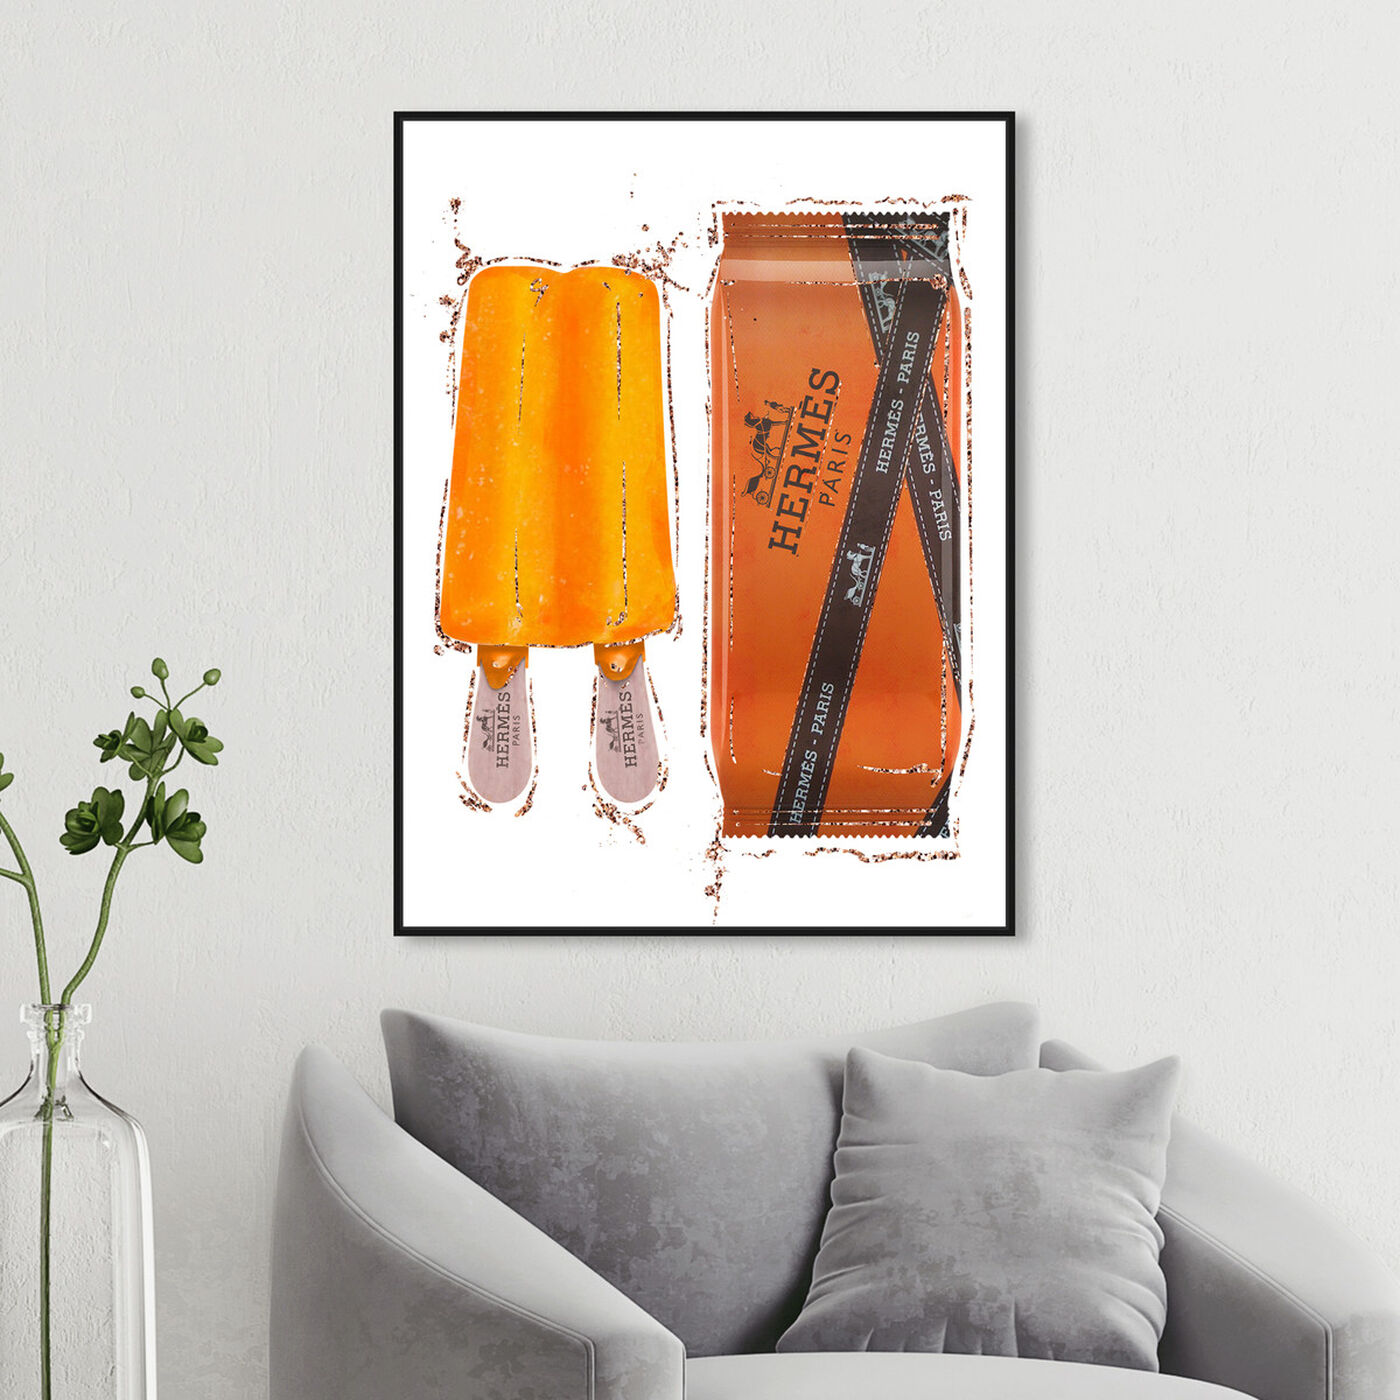 Hanging view of Sweet Fashion Orange Pop featuring fashion and glam and lifestyle art.